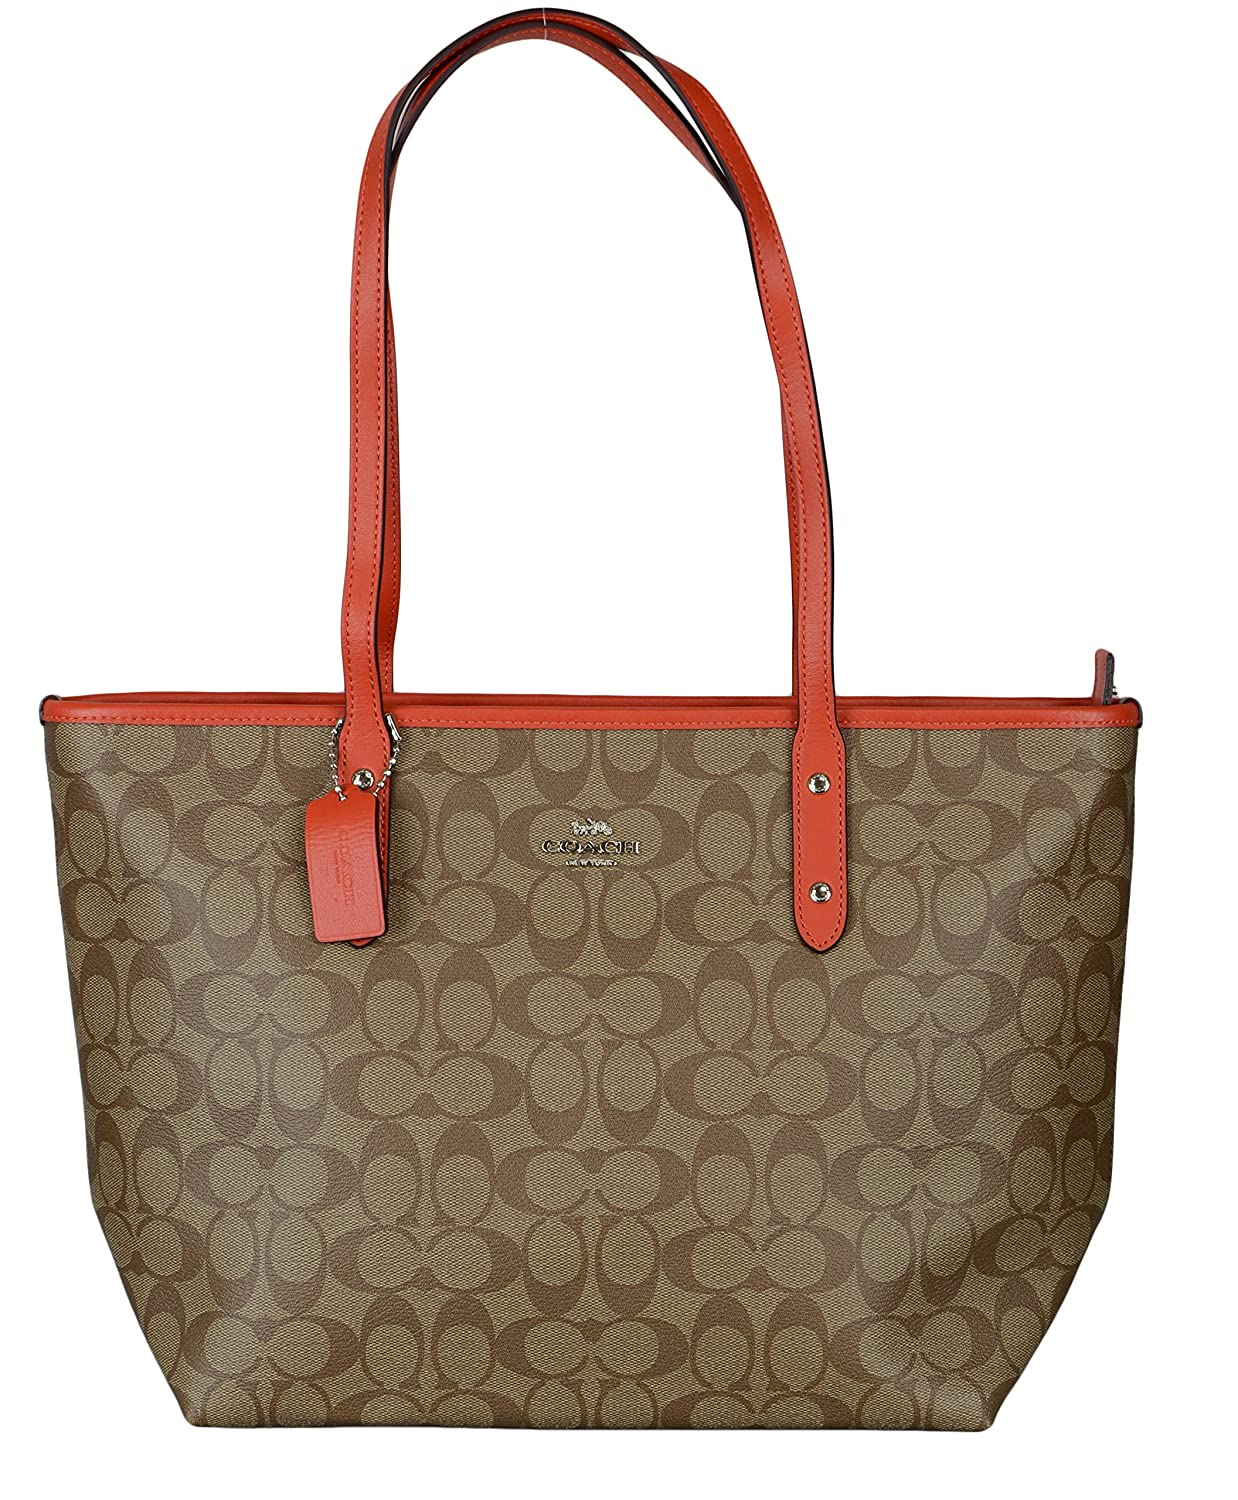 631570142f Coach REVERSIBLE CITY TOTE IN SIGNATURE Coated Canvas Womens Bag (one  size)  Handbags  Amazon.com